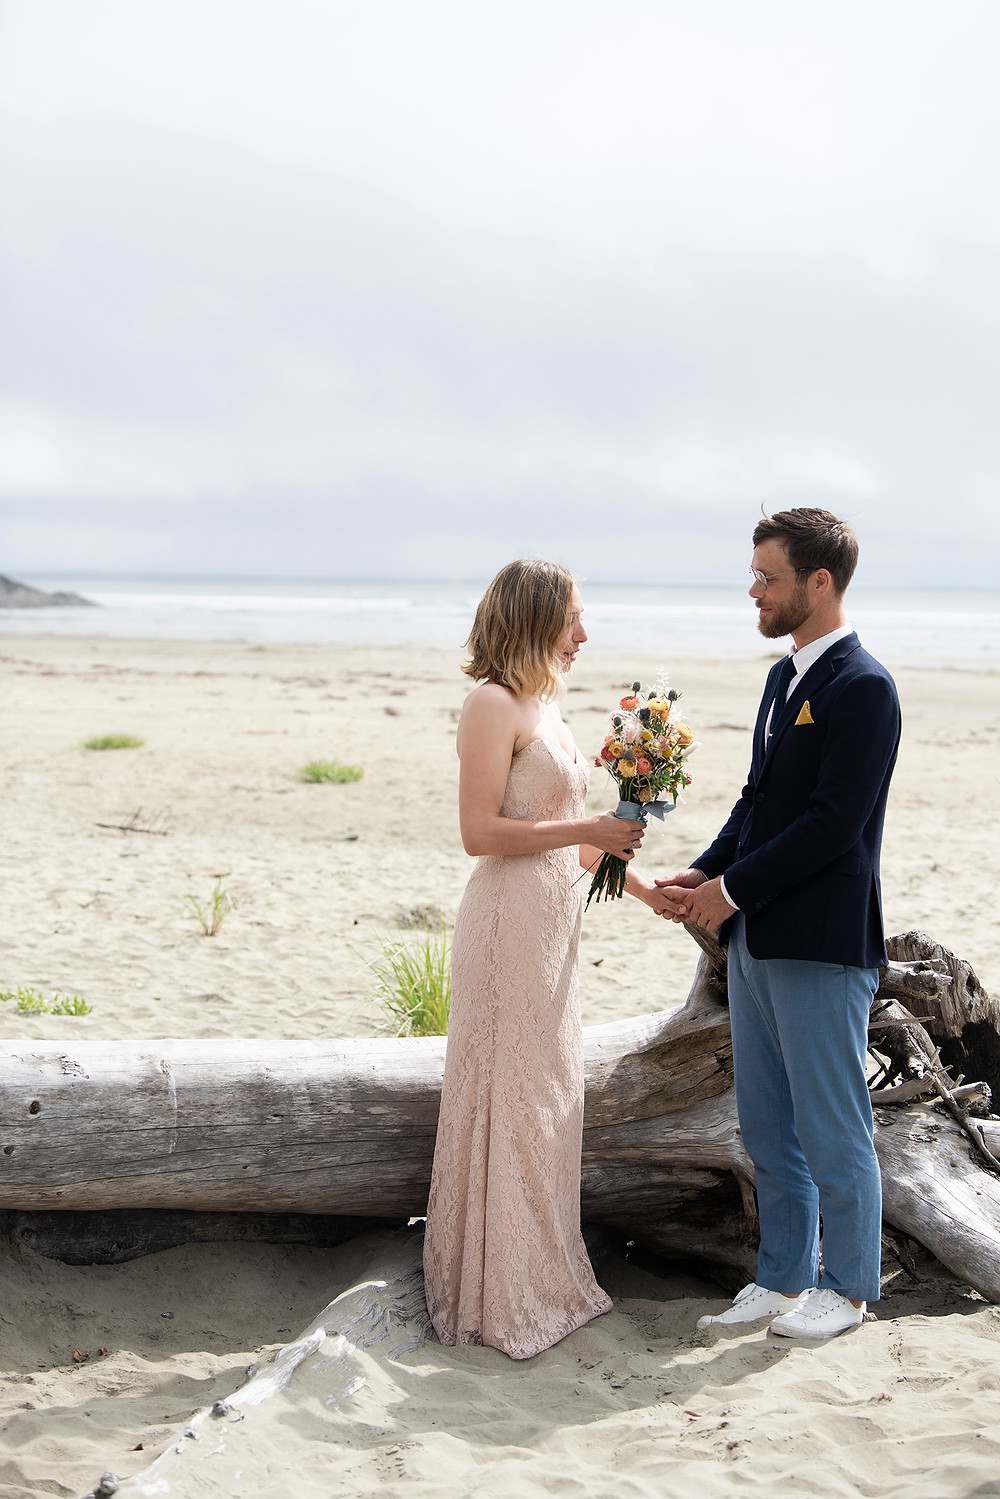 Eloping to Tofino. Photographed by Tofino wedding photographer Kaitlyn Shea.